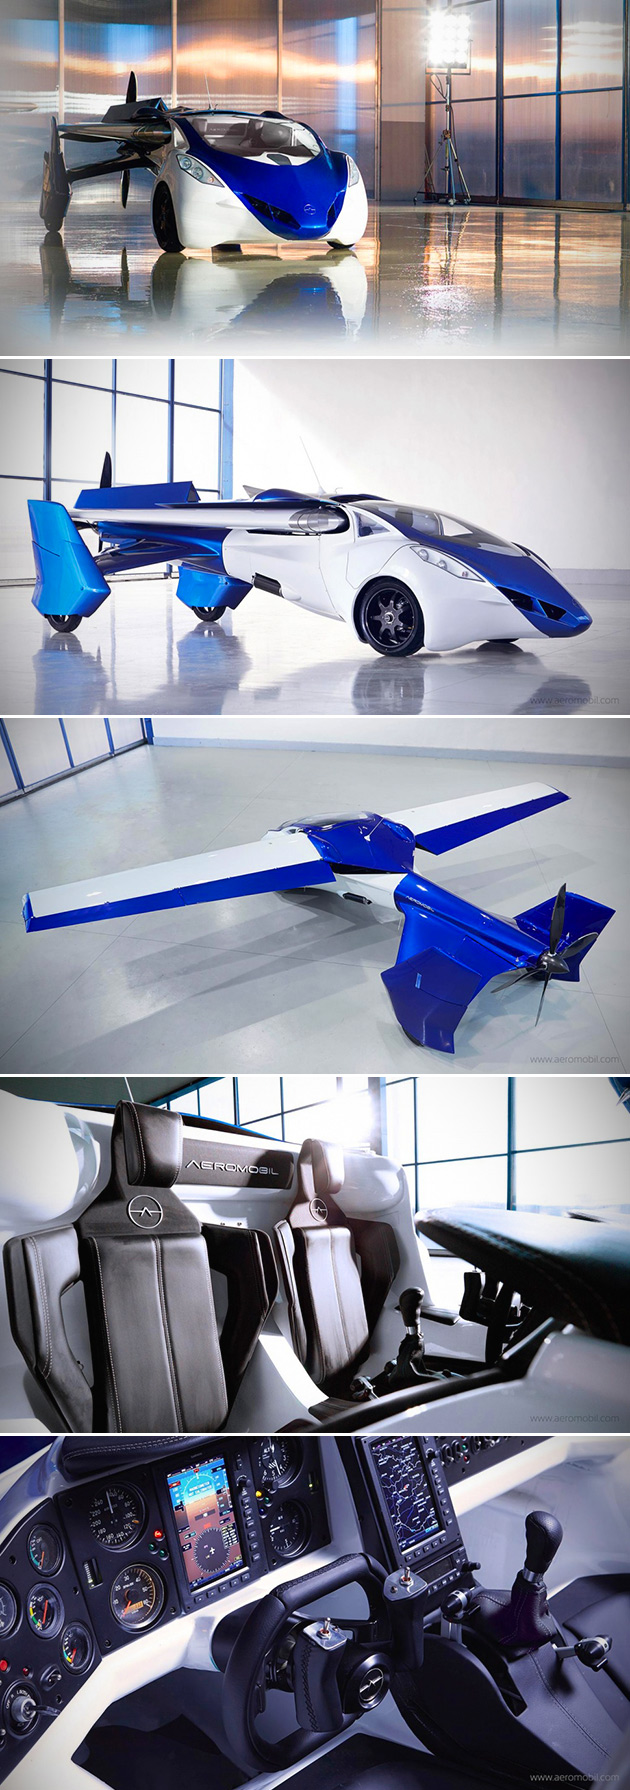 AeroMobil Flying Car 2015 2016